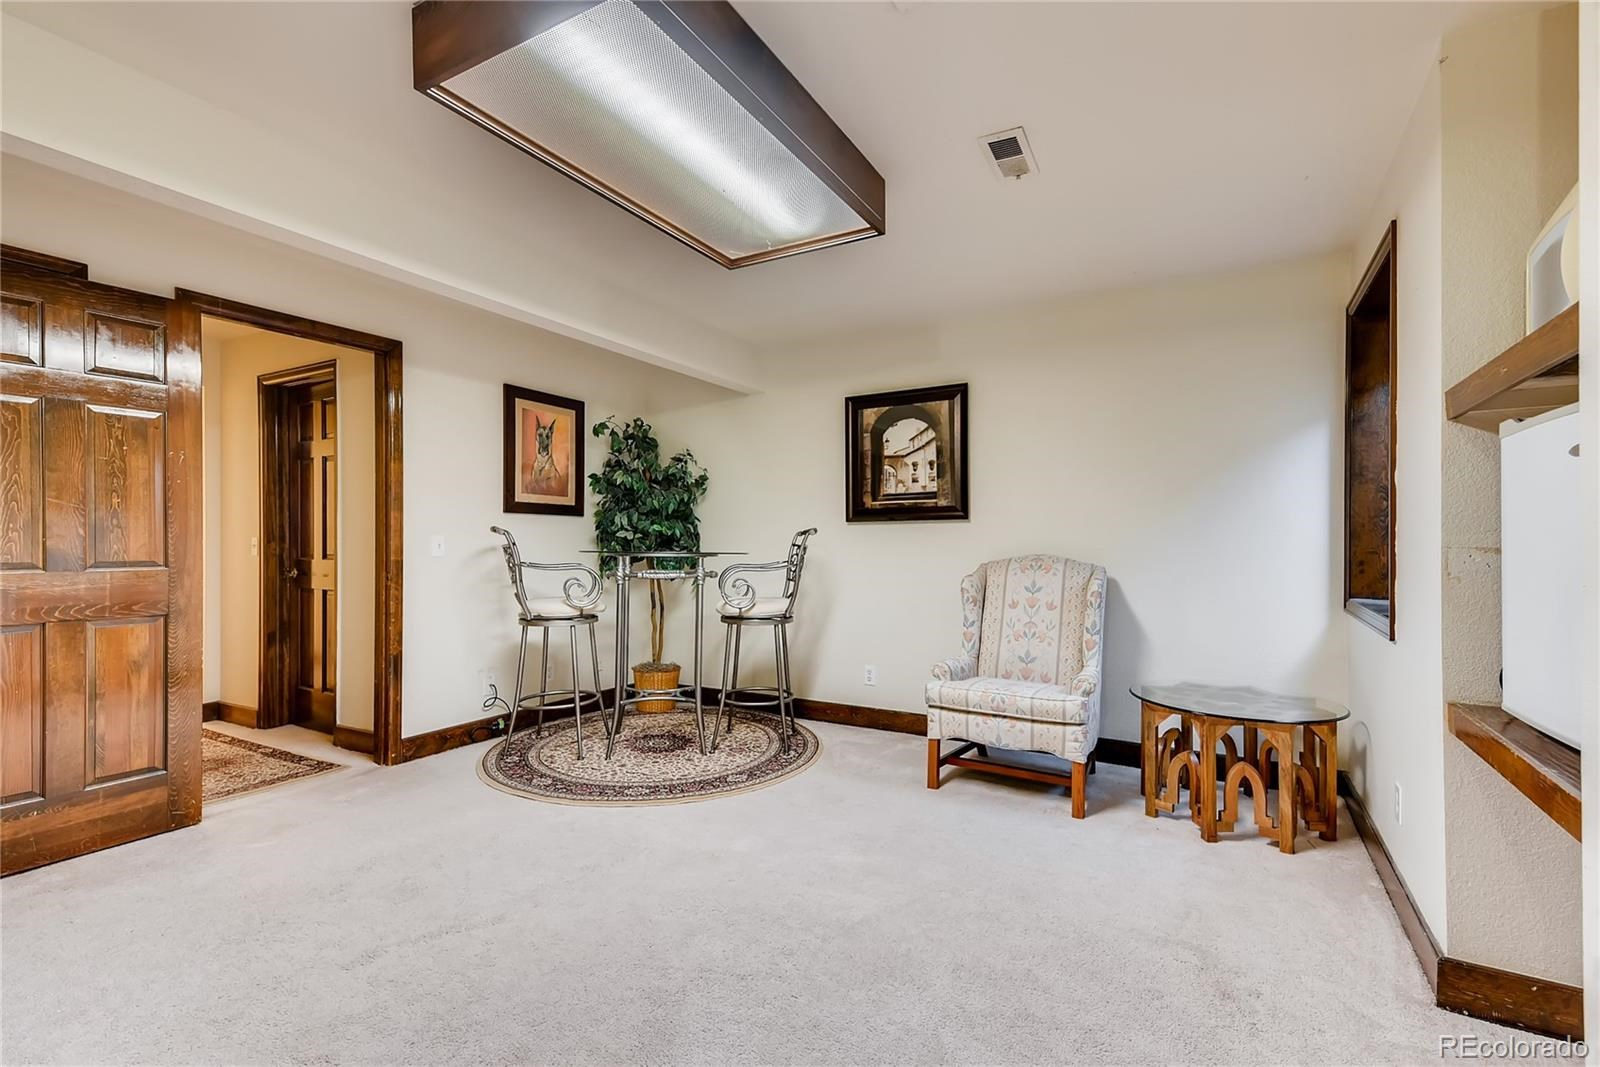 MLS# 6910180 - 16 - 2336 Ranch Drive, Westminster, CO 80234